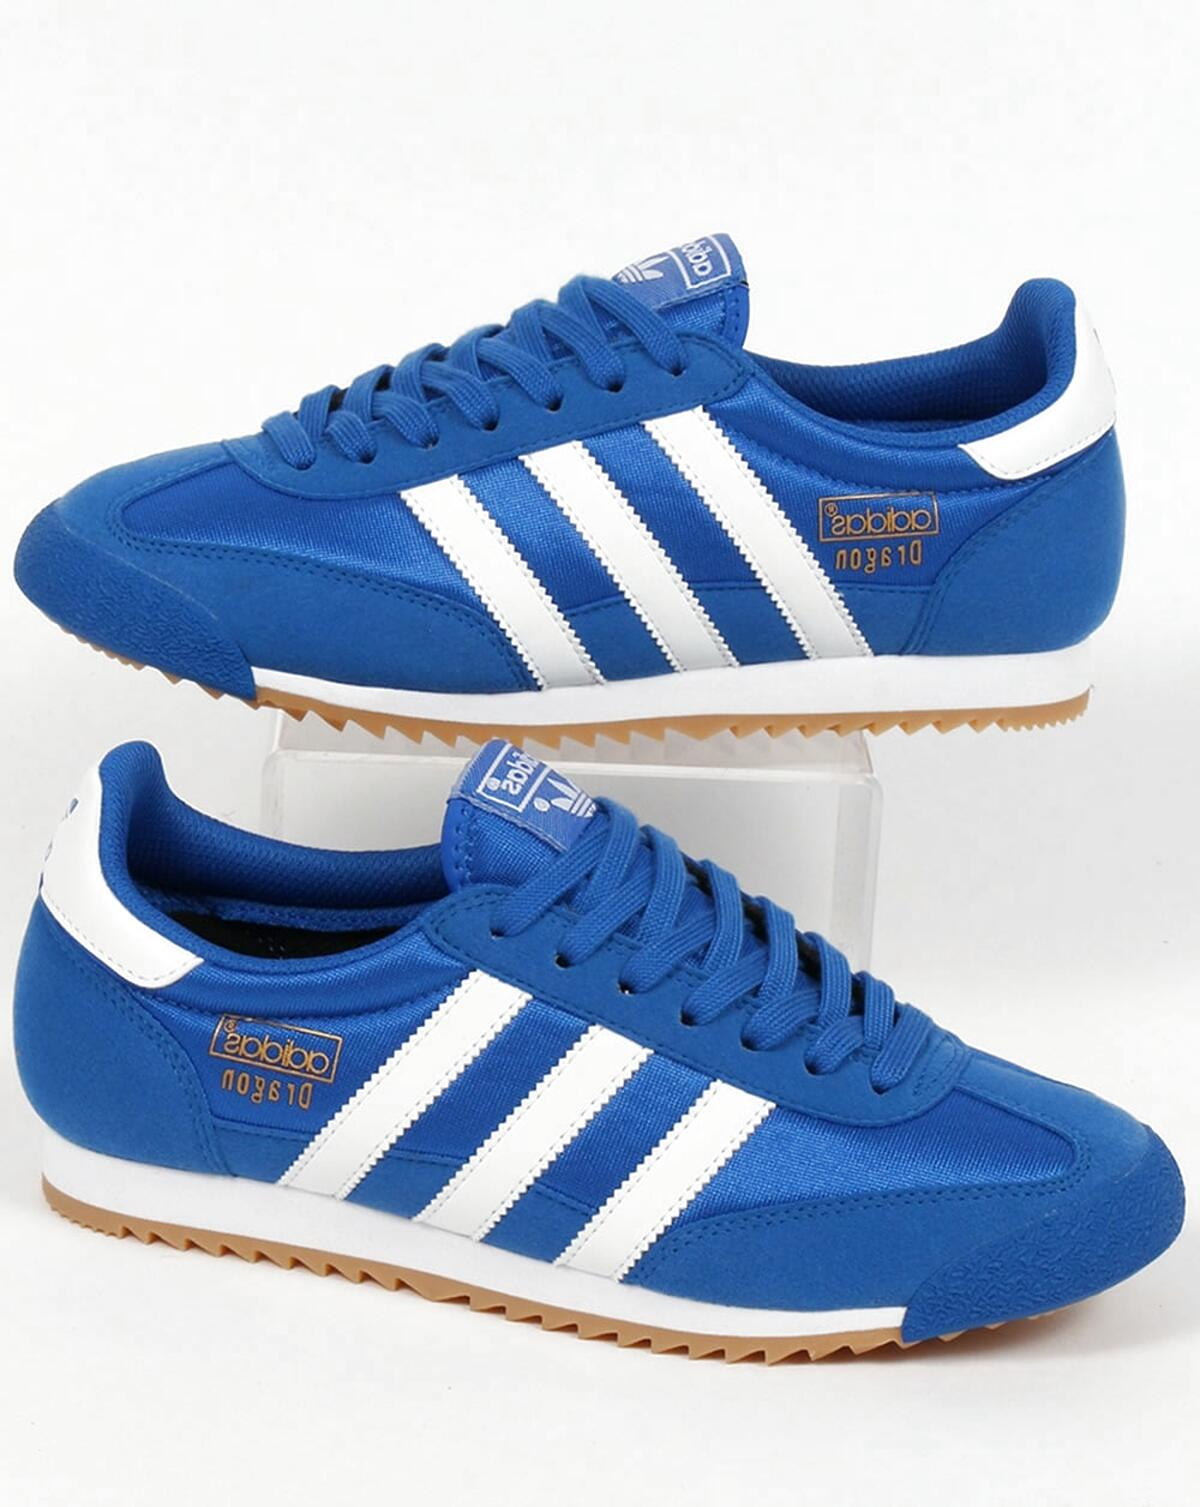 old skool adidas trainers cheap online